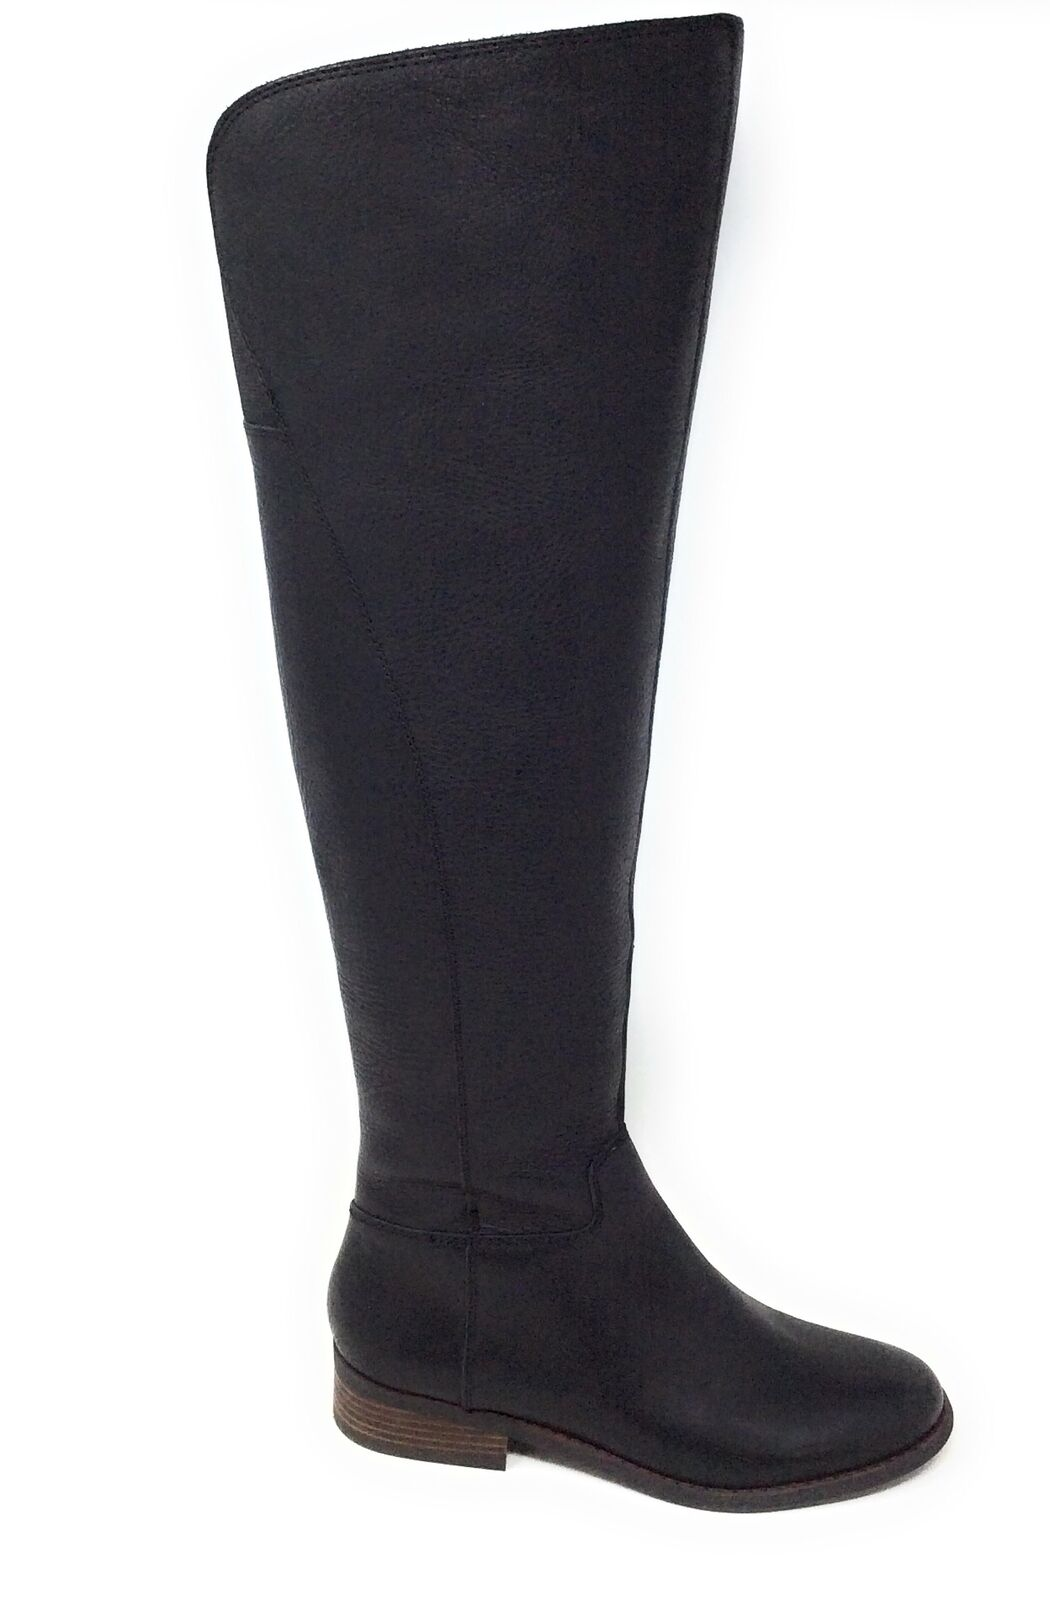 Lucky Brand Womens LK-Havasoo Knee High Motorcycle Boots Black Size 7 M US